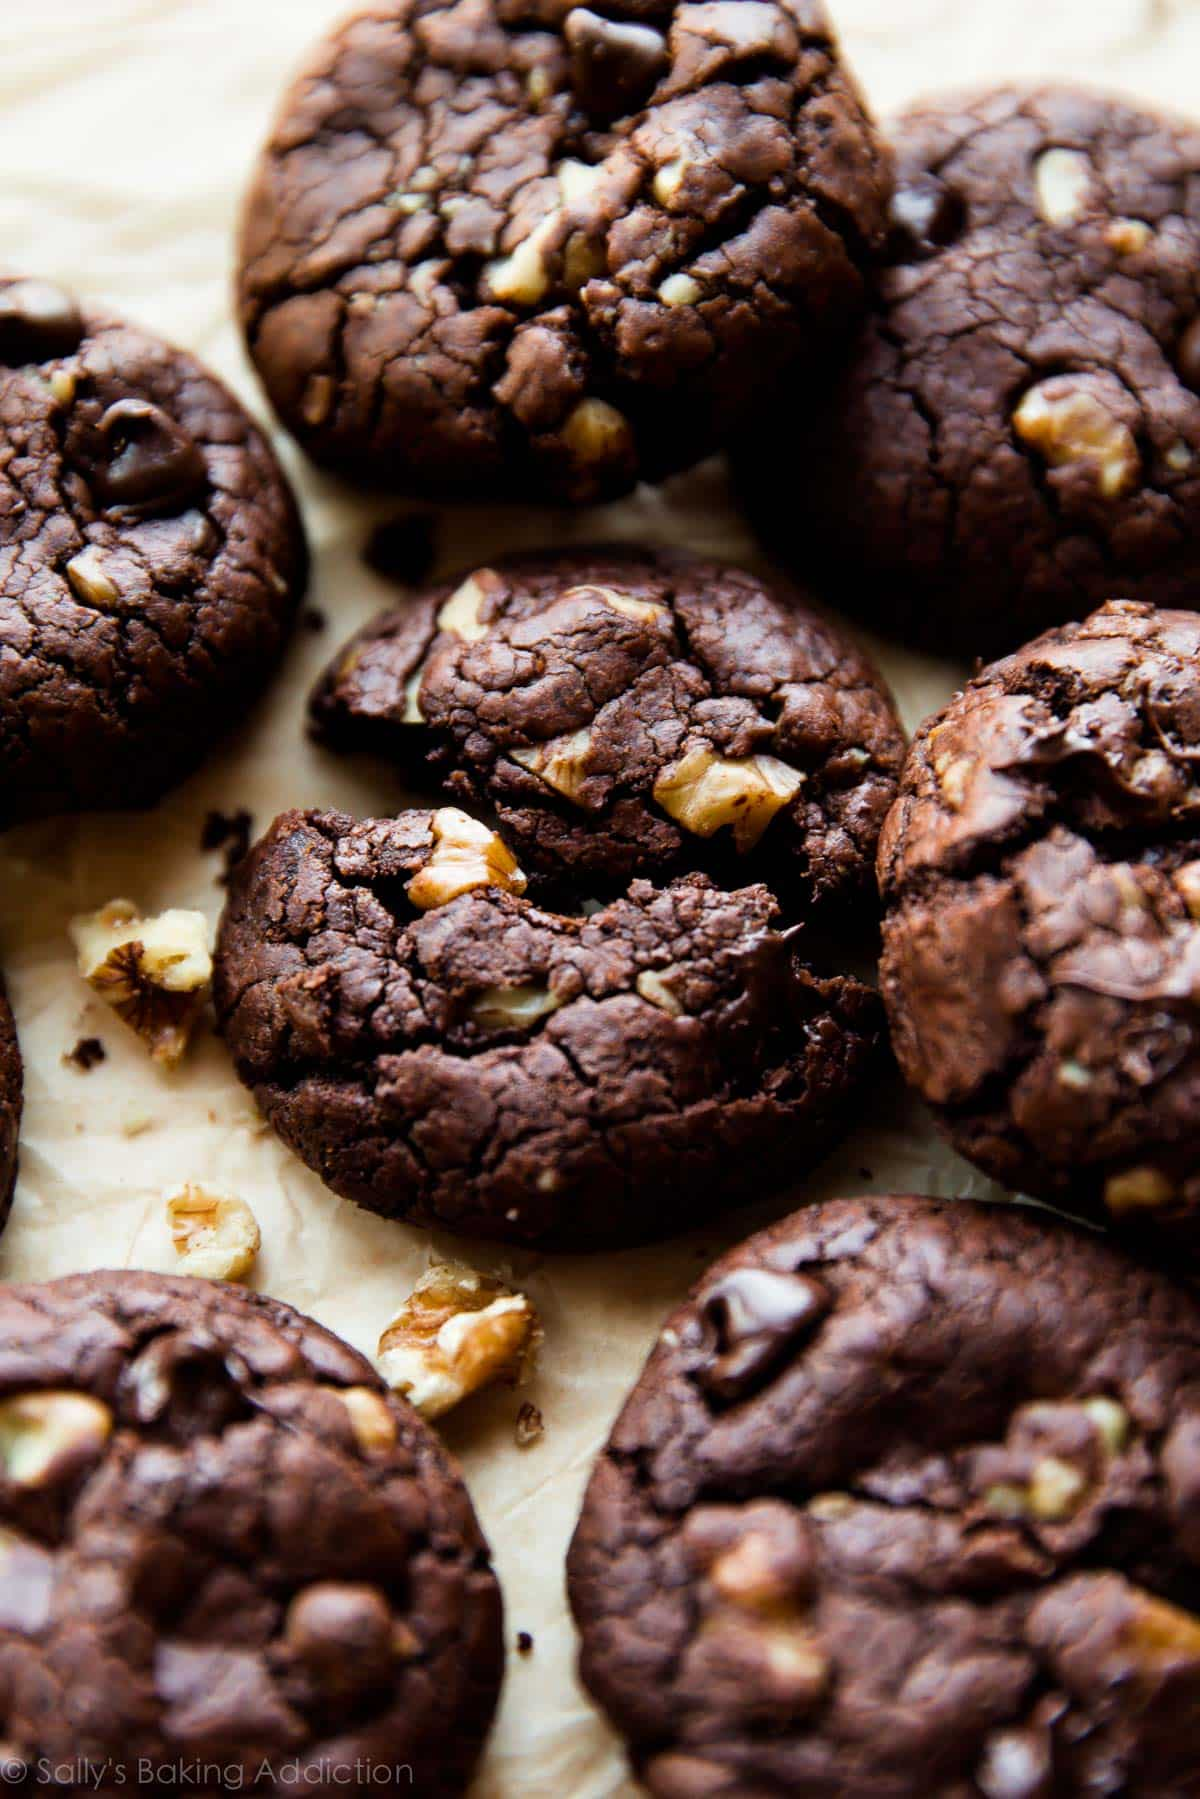 Brownie Walnut Chunk Cookies - Sallys Baking Addiction